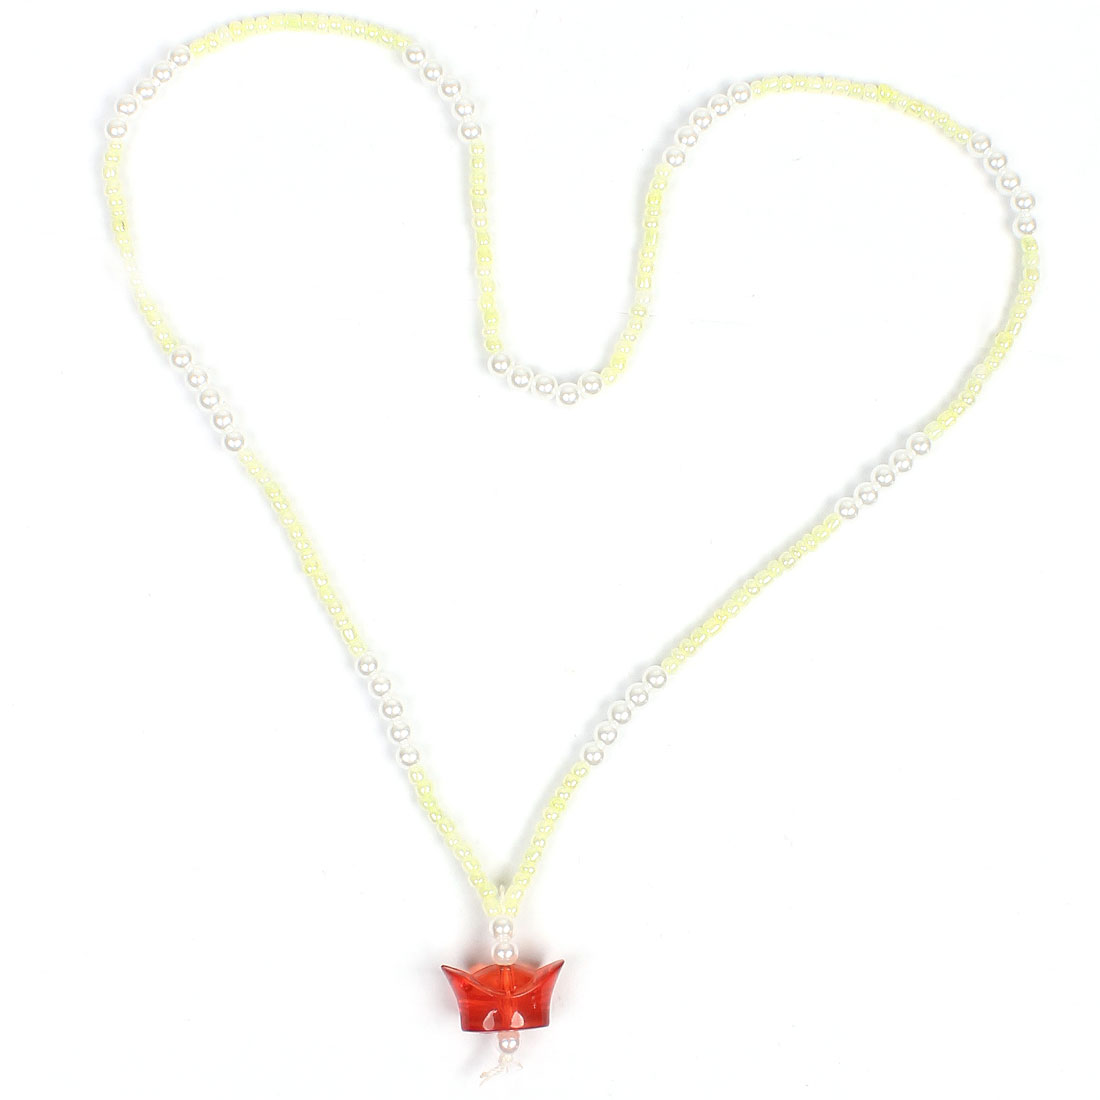 Sycee Round Beaded Decor White Red Pendant Chain Sweater Necklace